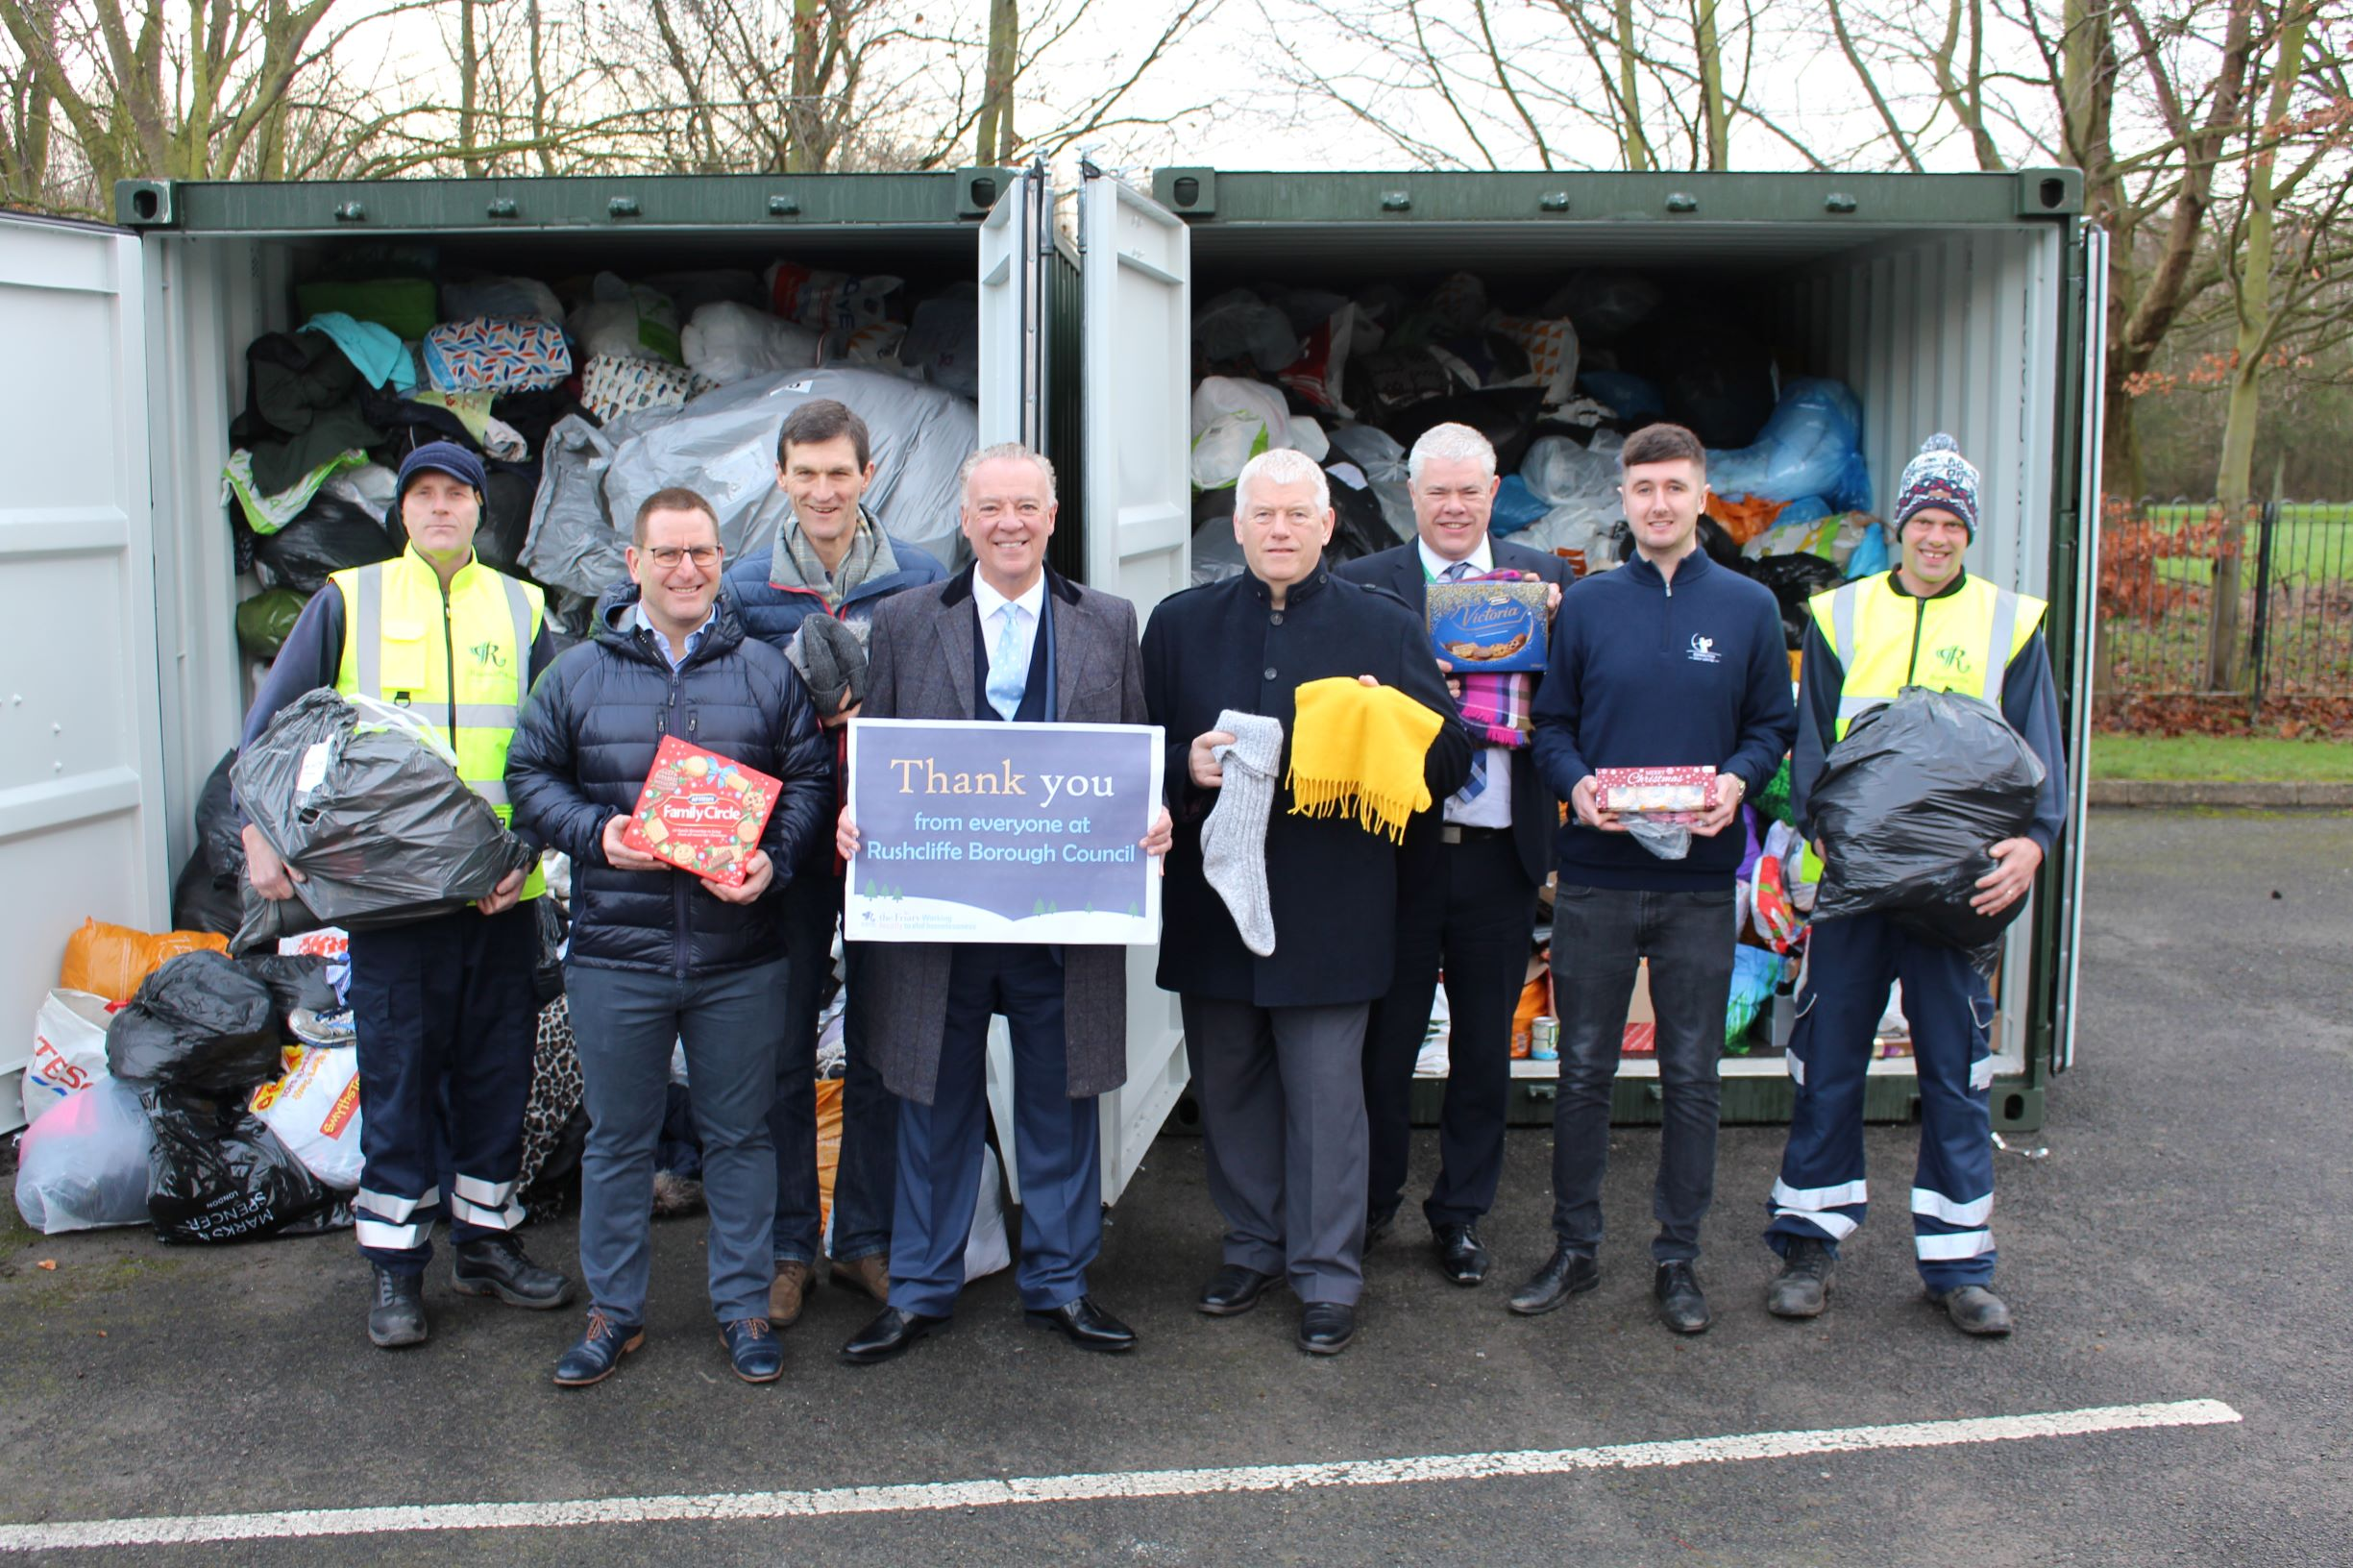 Partners co ordinated an effort to collect an astonishing amount of food and clothes from Rushcliffe residents